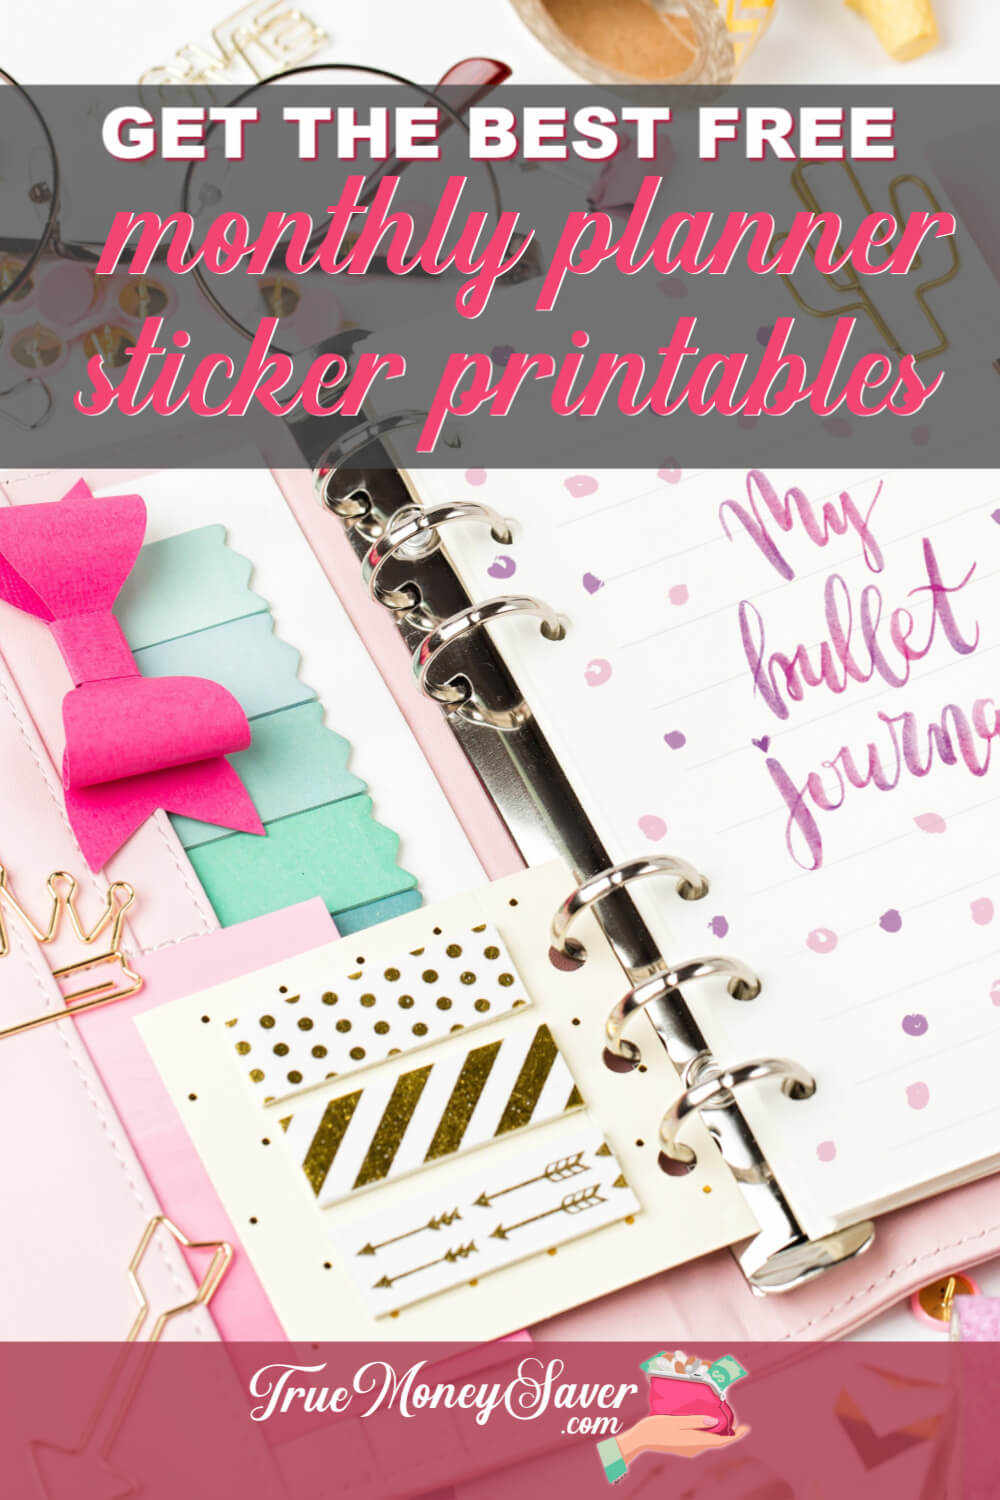 Looking for some FREE monthly planner sticker printables? You\'ve found the best list monthly planner printable free stickers I could find! So let\'s get started decorating our planners with these cute monthly planner printable!